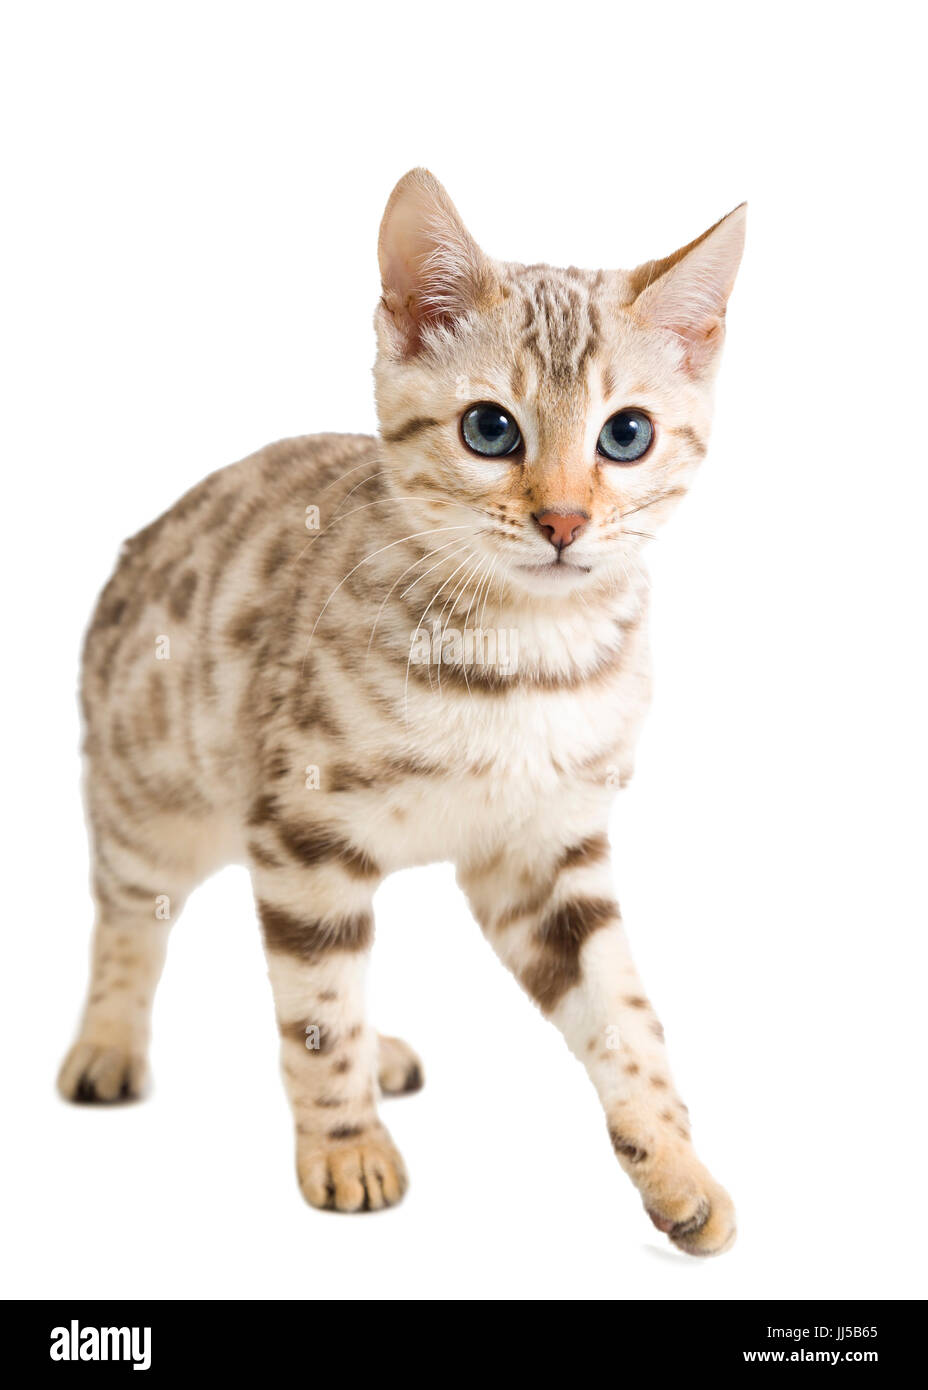 Snow Bengal cat kitten isolated on white background  Model Release: No.  Property Release: No. - Stock Image